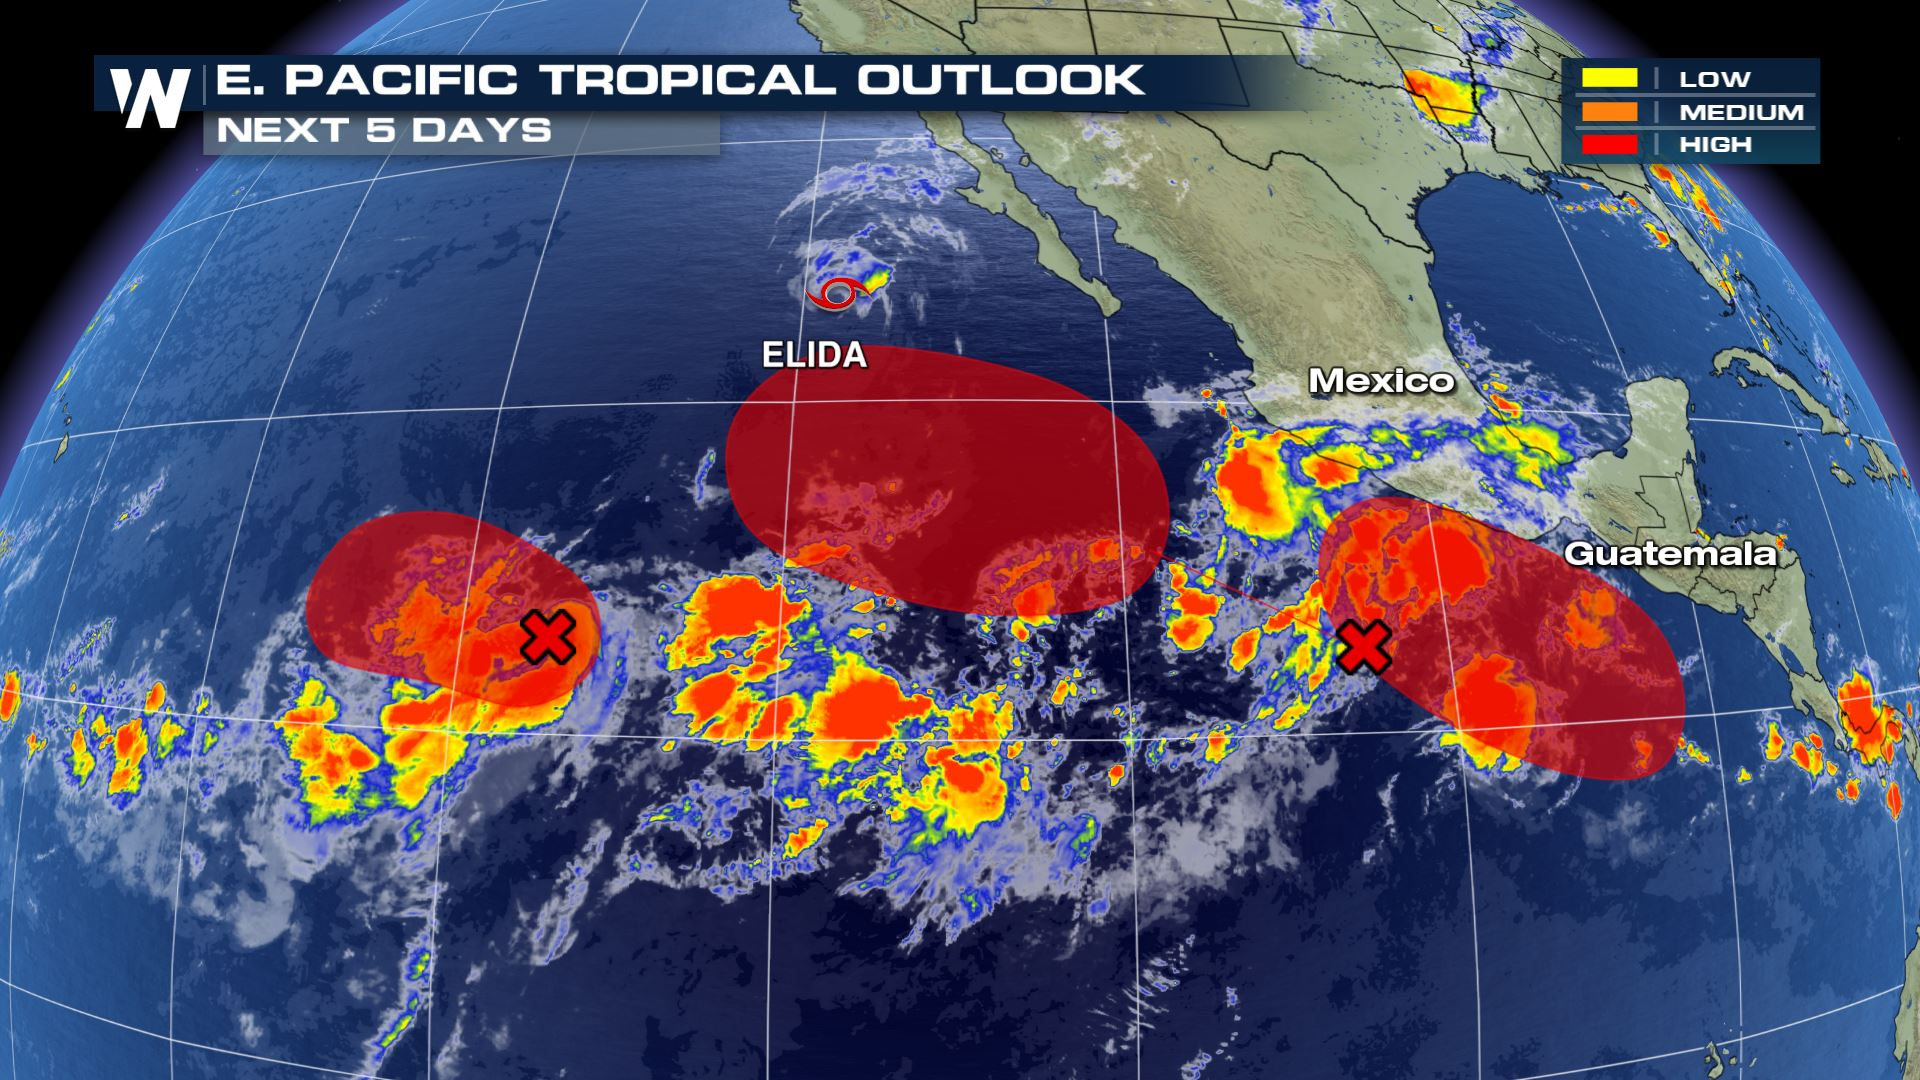 Eastern Pacific Tropics Getting Active